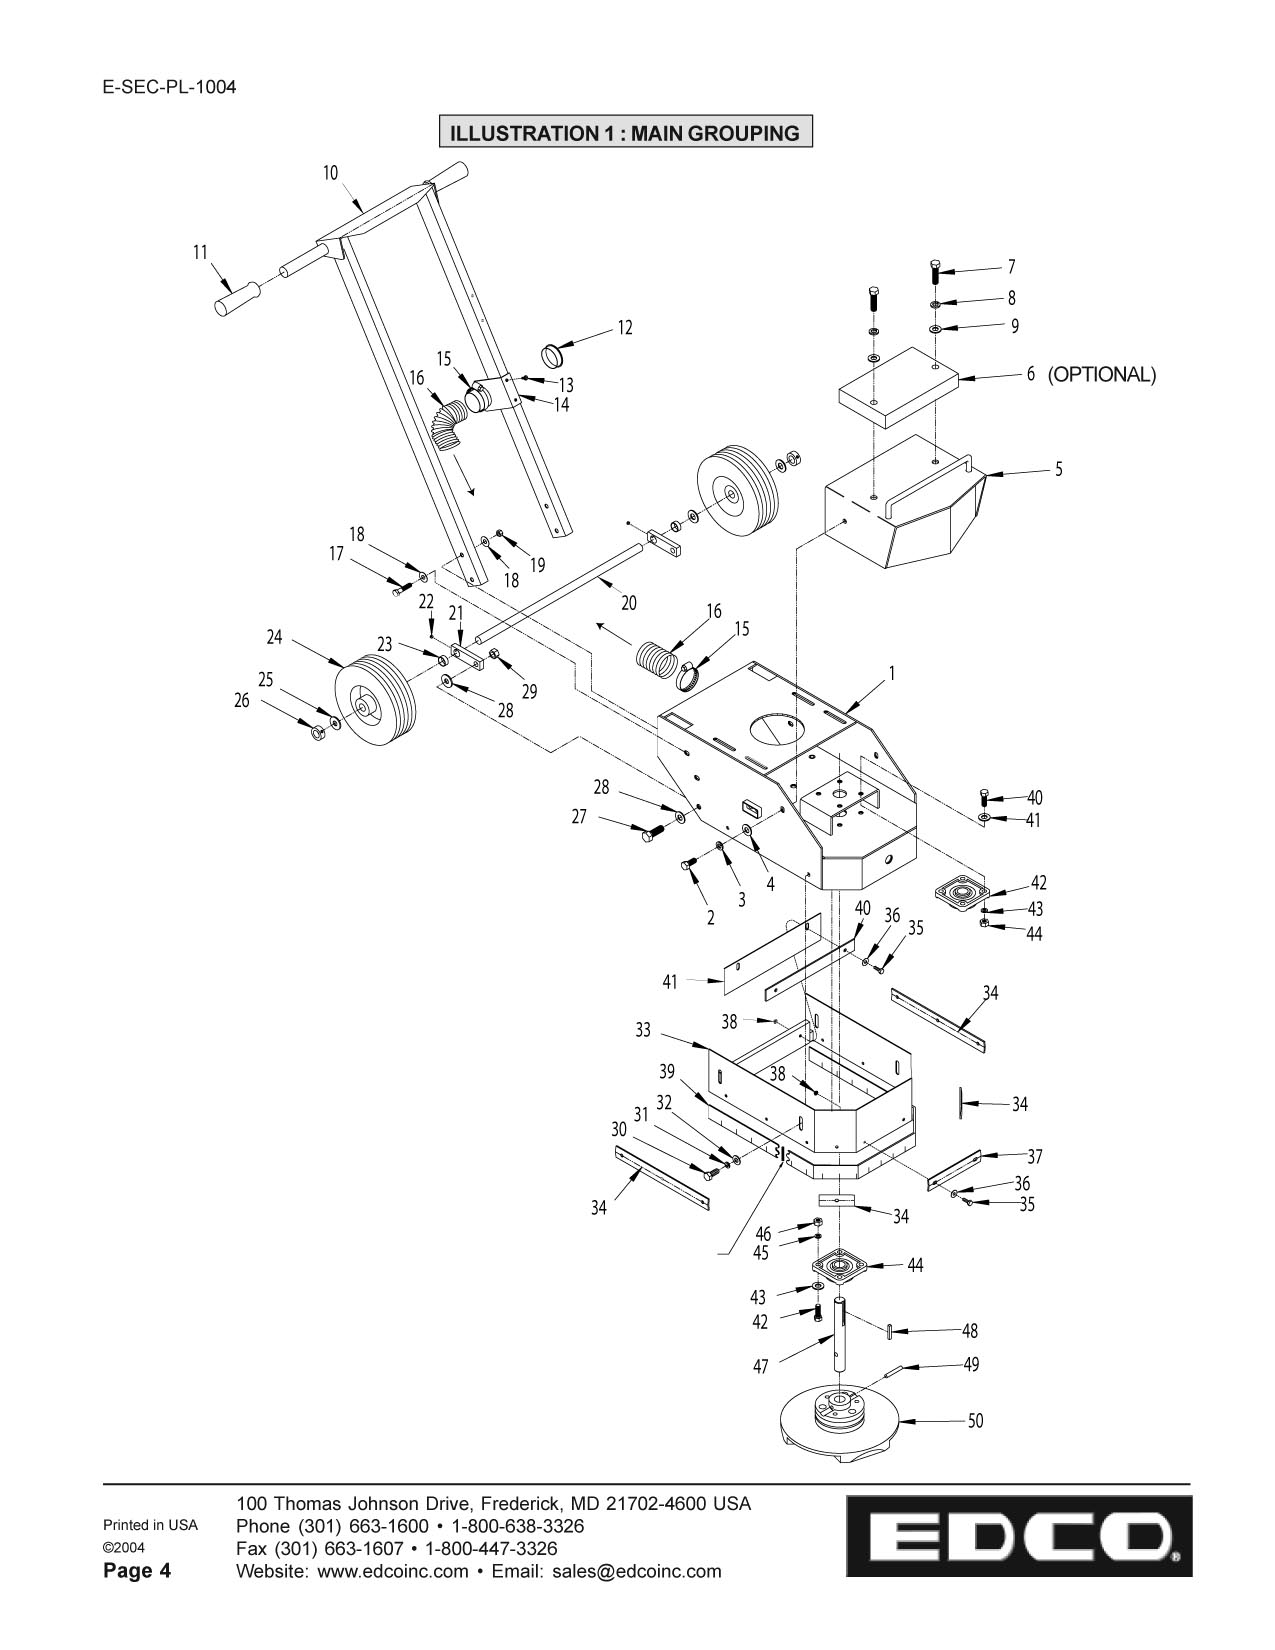 Construction Equipment Parts Jlg Parts From Www